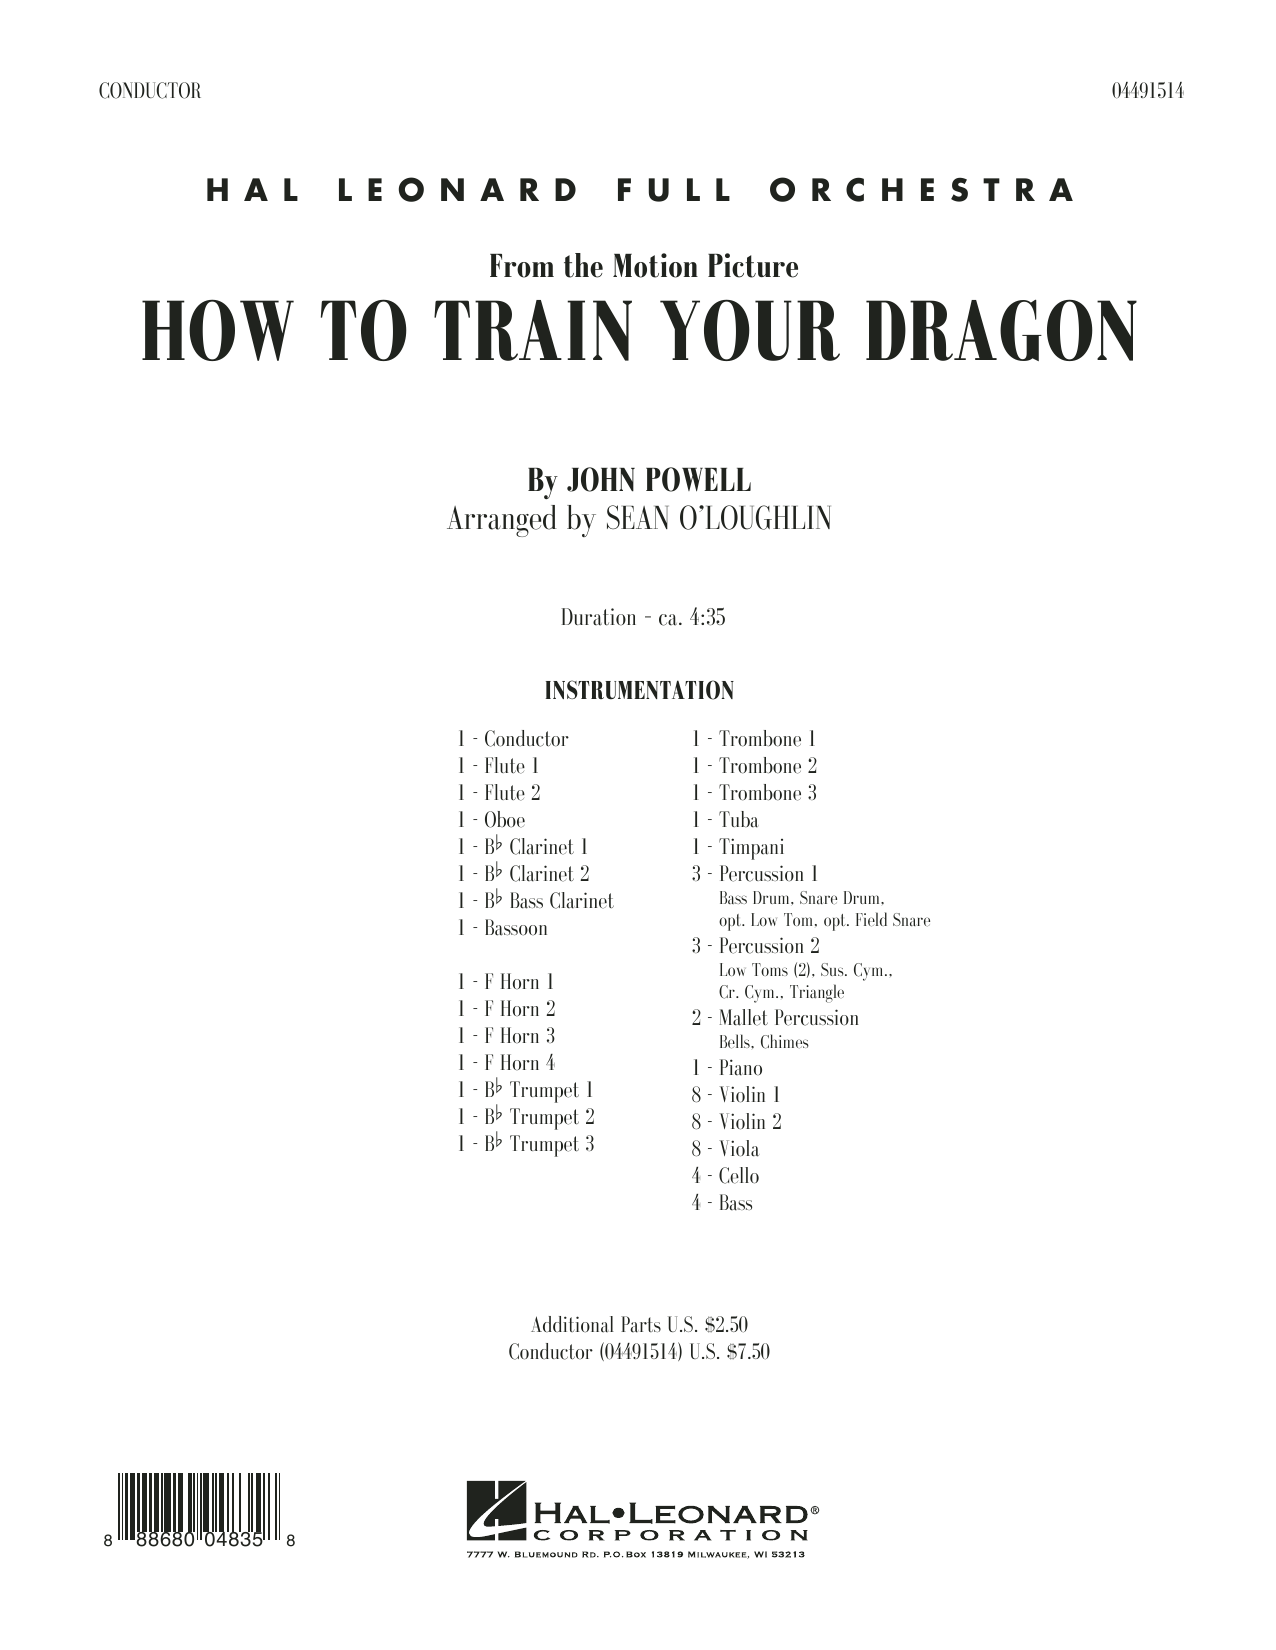 How to Train Your Dragon (COMPLETE) sheet music for full orchestra by Sean O'Loughlin and John Powell. Score Image Preview.